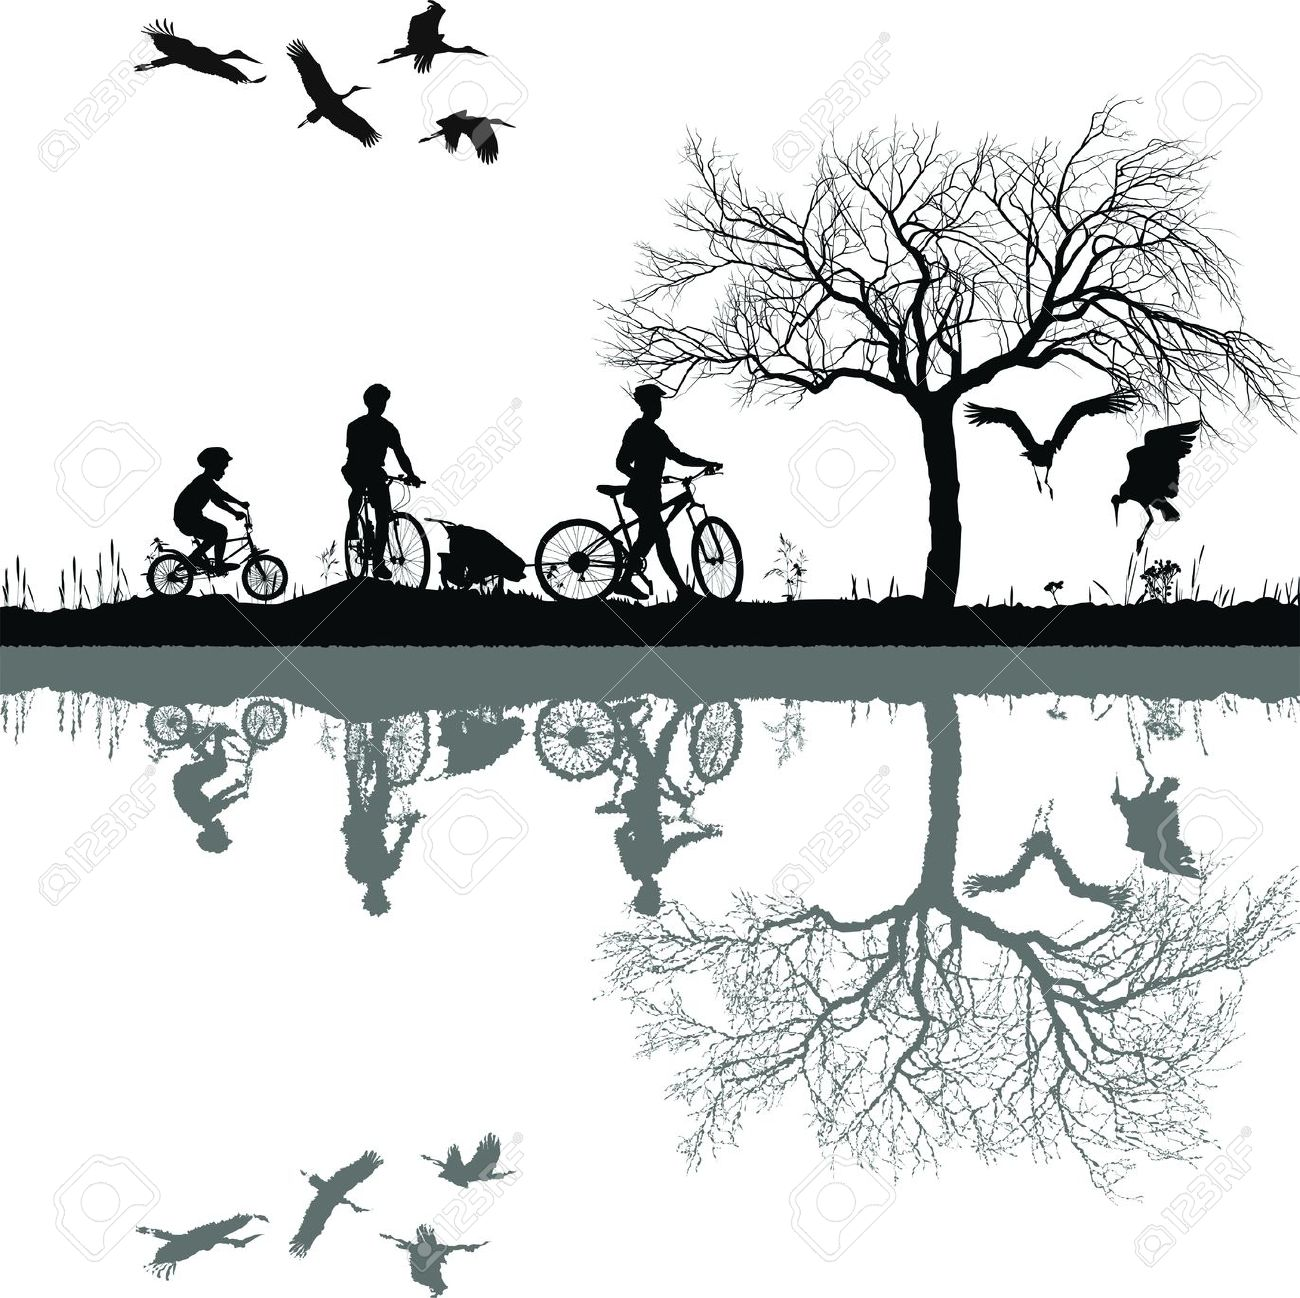 Illustration Of A Family On Bicycles And Their Reflection In.